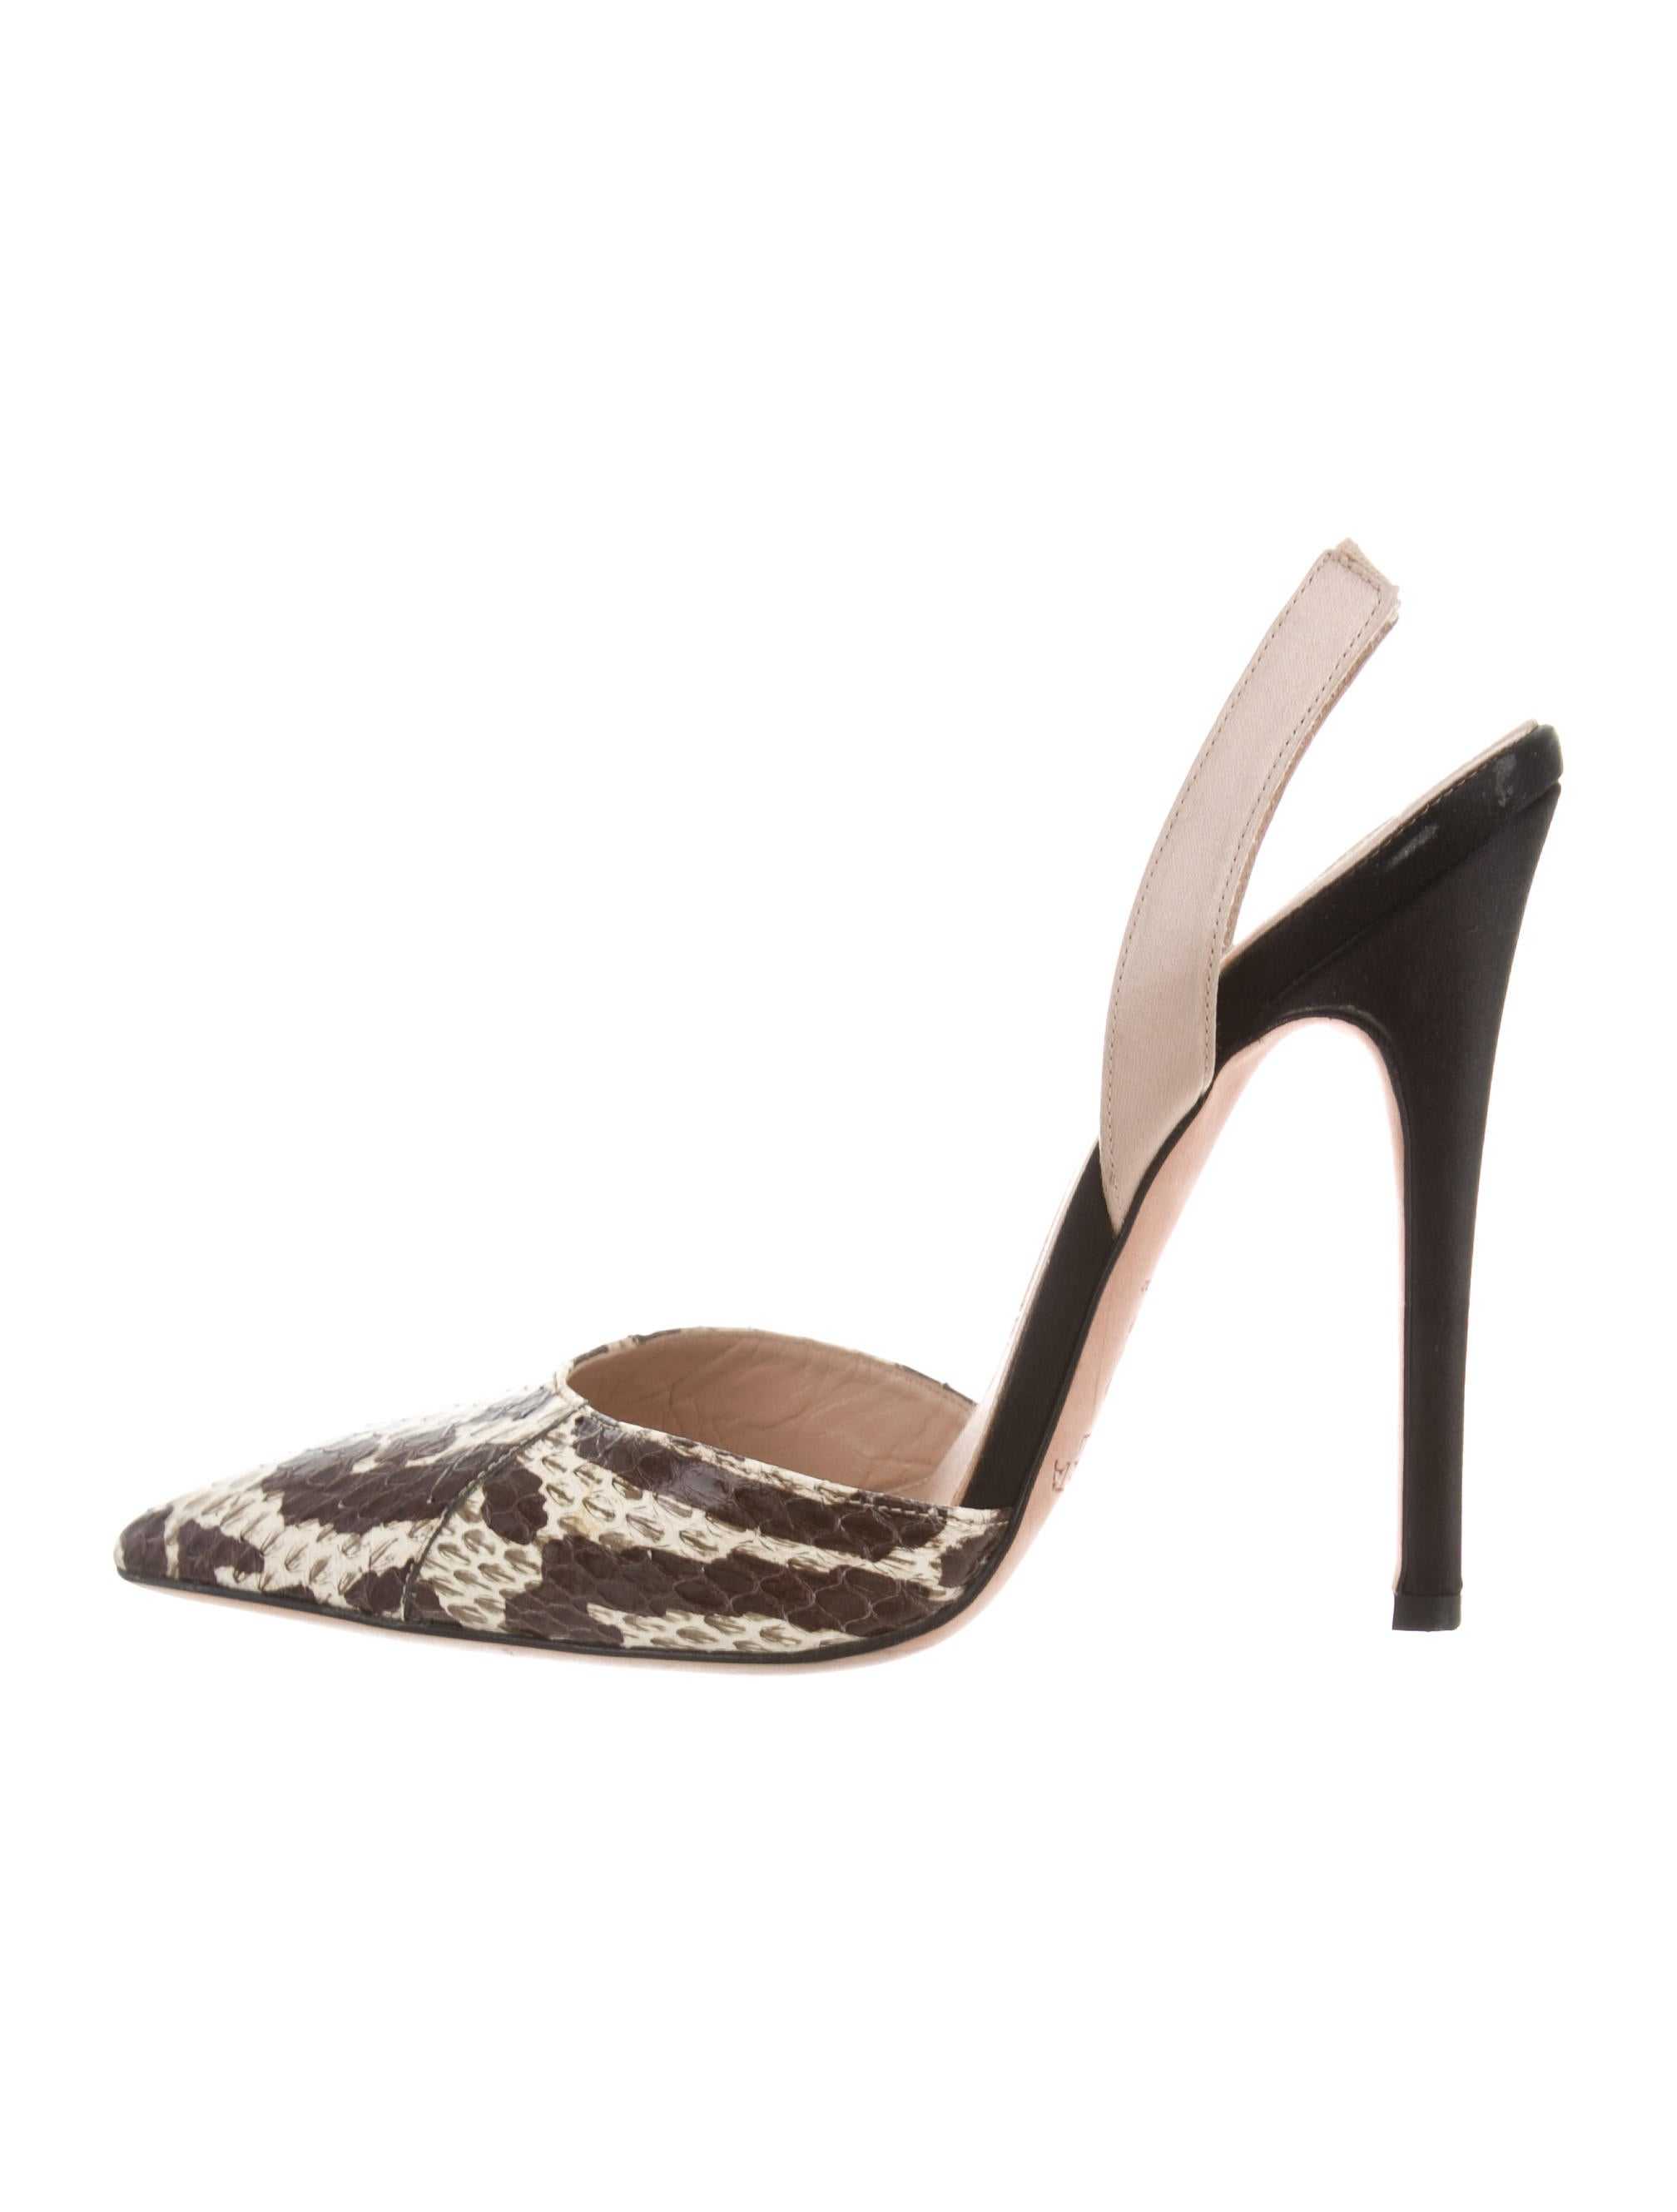 sale best seller Giambattista Valli Python Slingback Pumps buy for sale buy cheap exclusive low cost cheap wiki YoeK4z